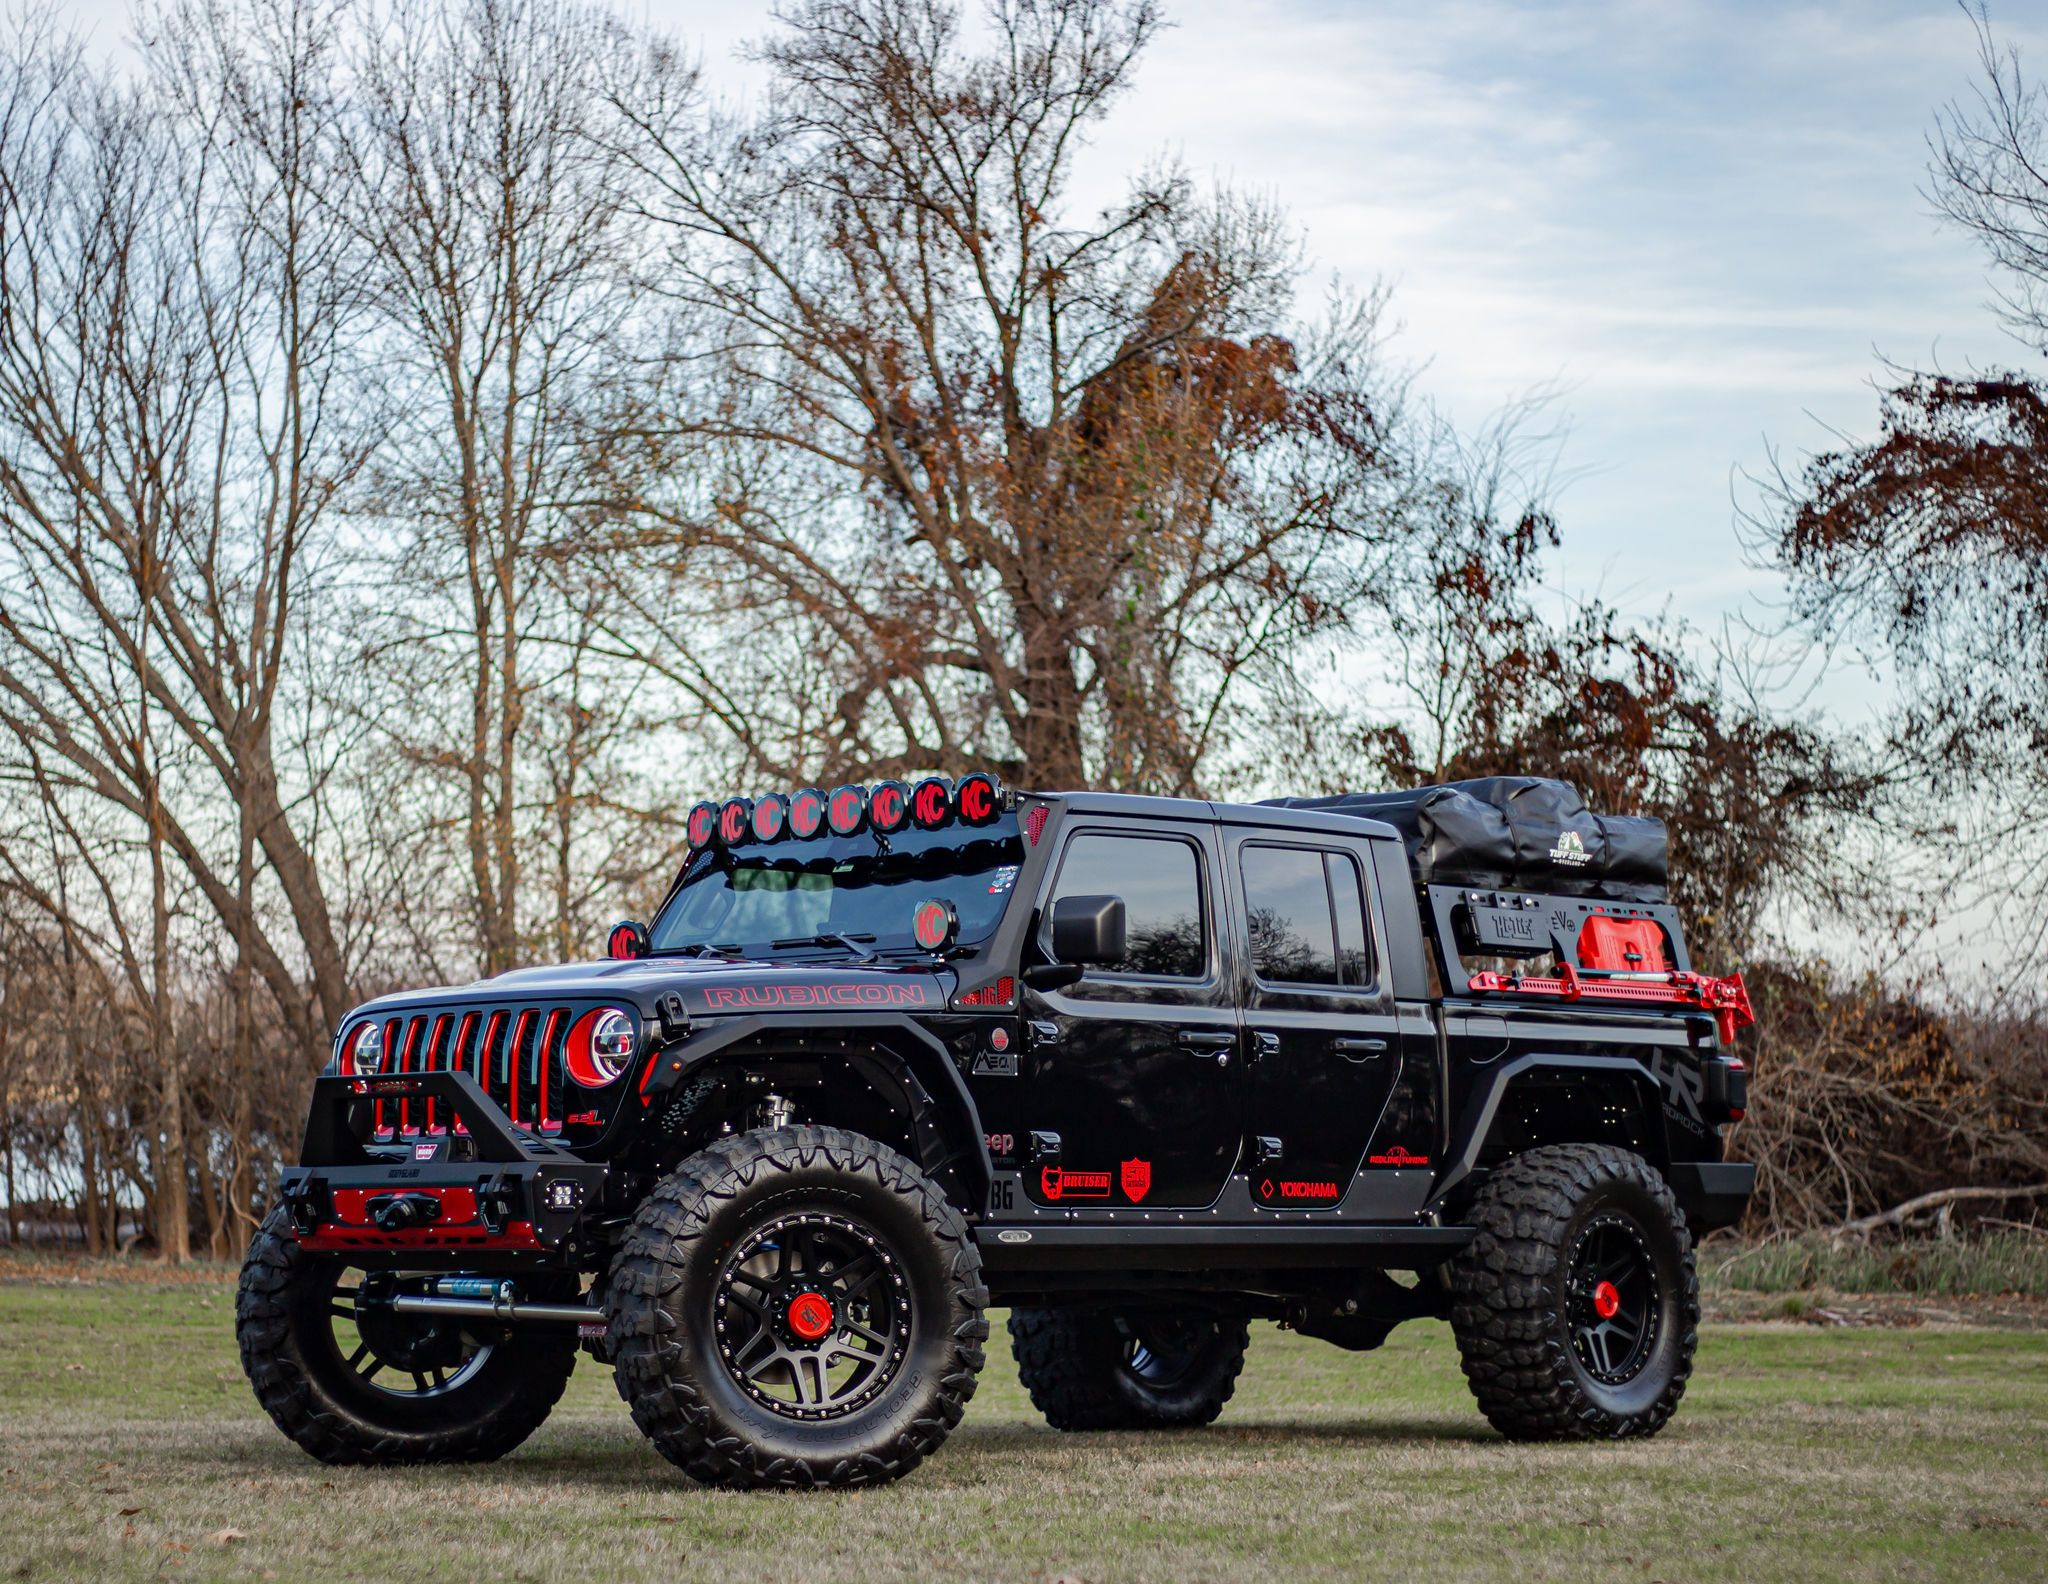 2020 Jeep Gladiator In 2020 Jeep Gladiator Offroad Jeep Jeep